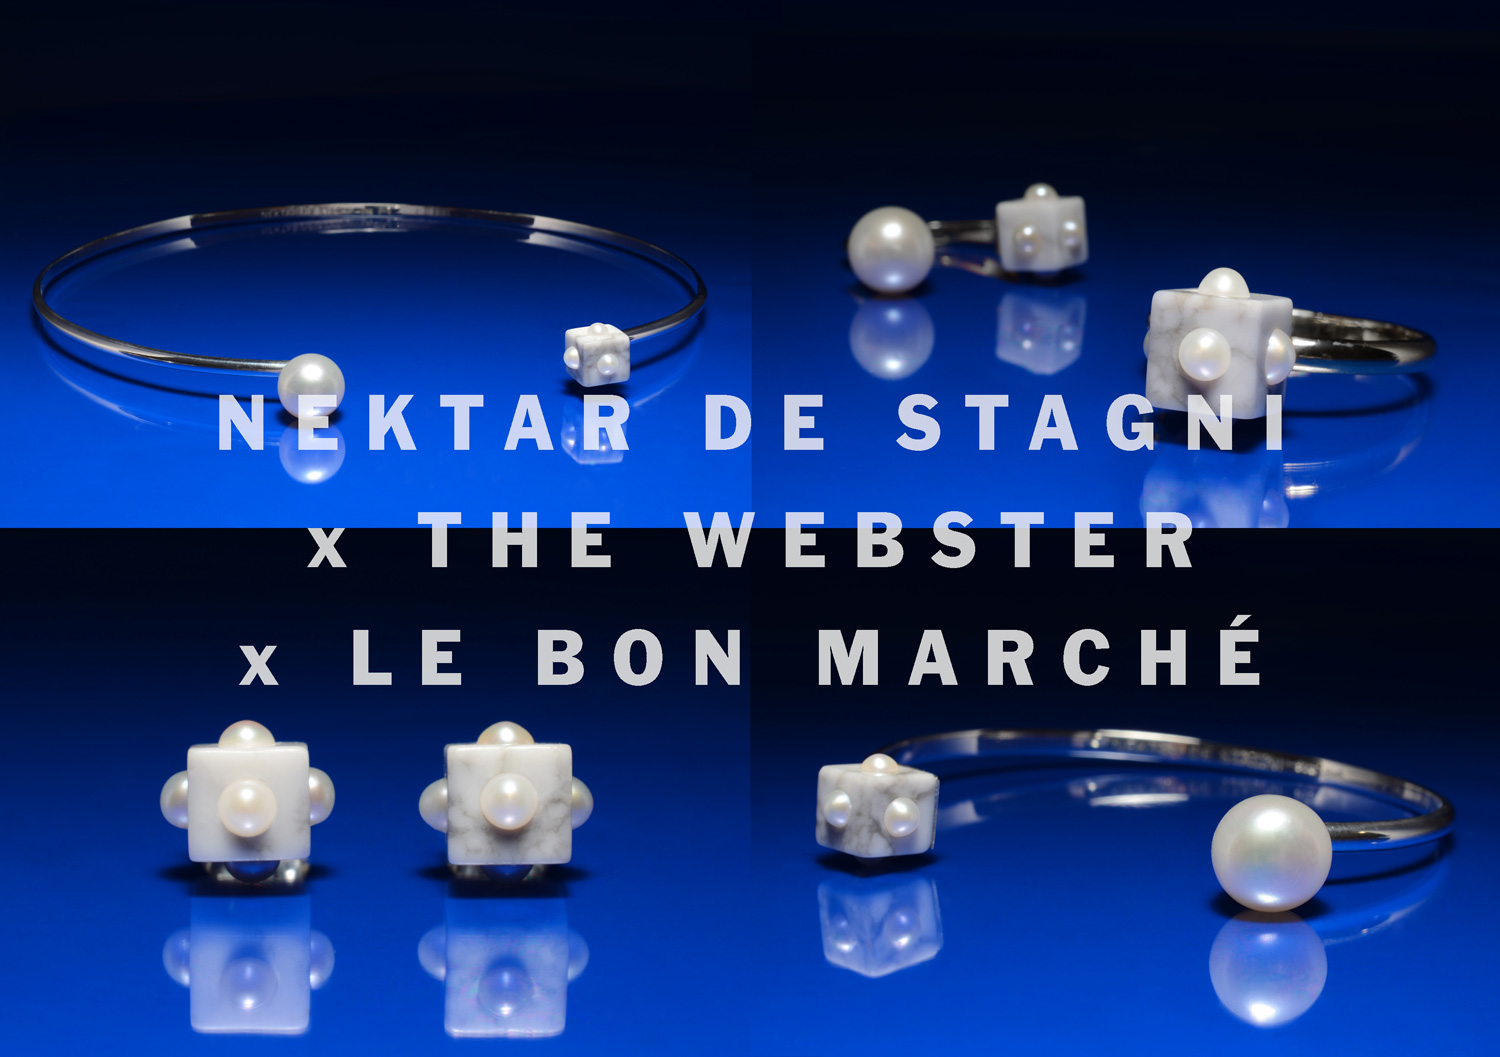 The Webster, Le Bon Marche, Nektar De Stagni exclusive jewelry collaboration featuring Pearls Marble and Sterling Silver